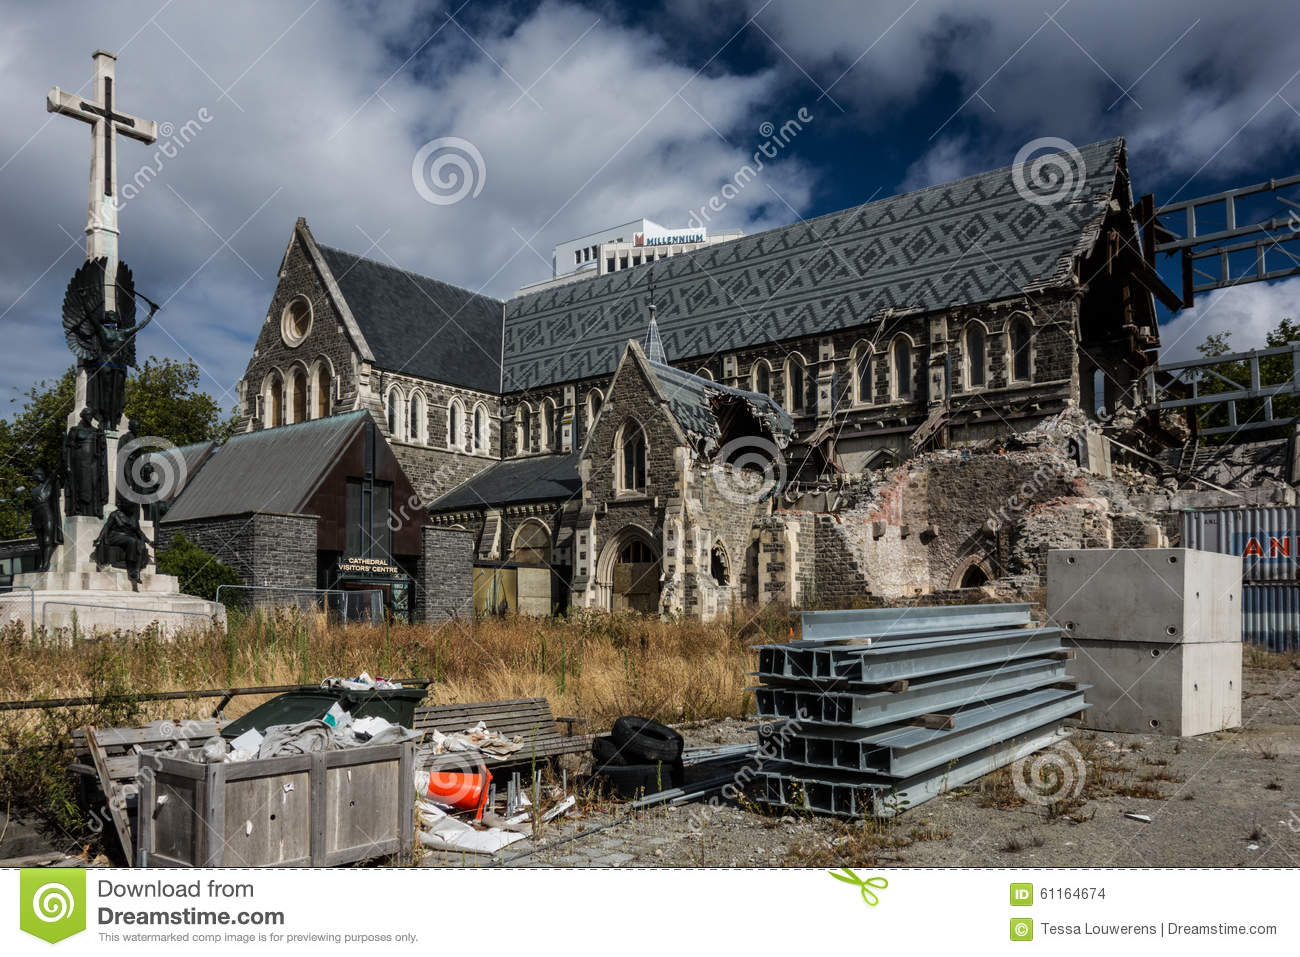 Christchurch Video Detail: Christchurch Cathedral Reconstruction After Earthquake